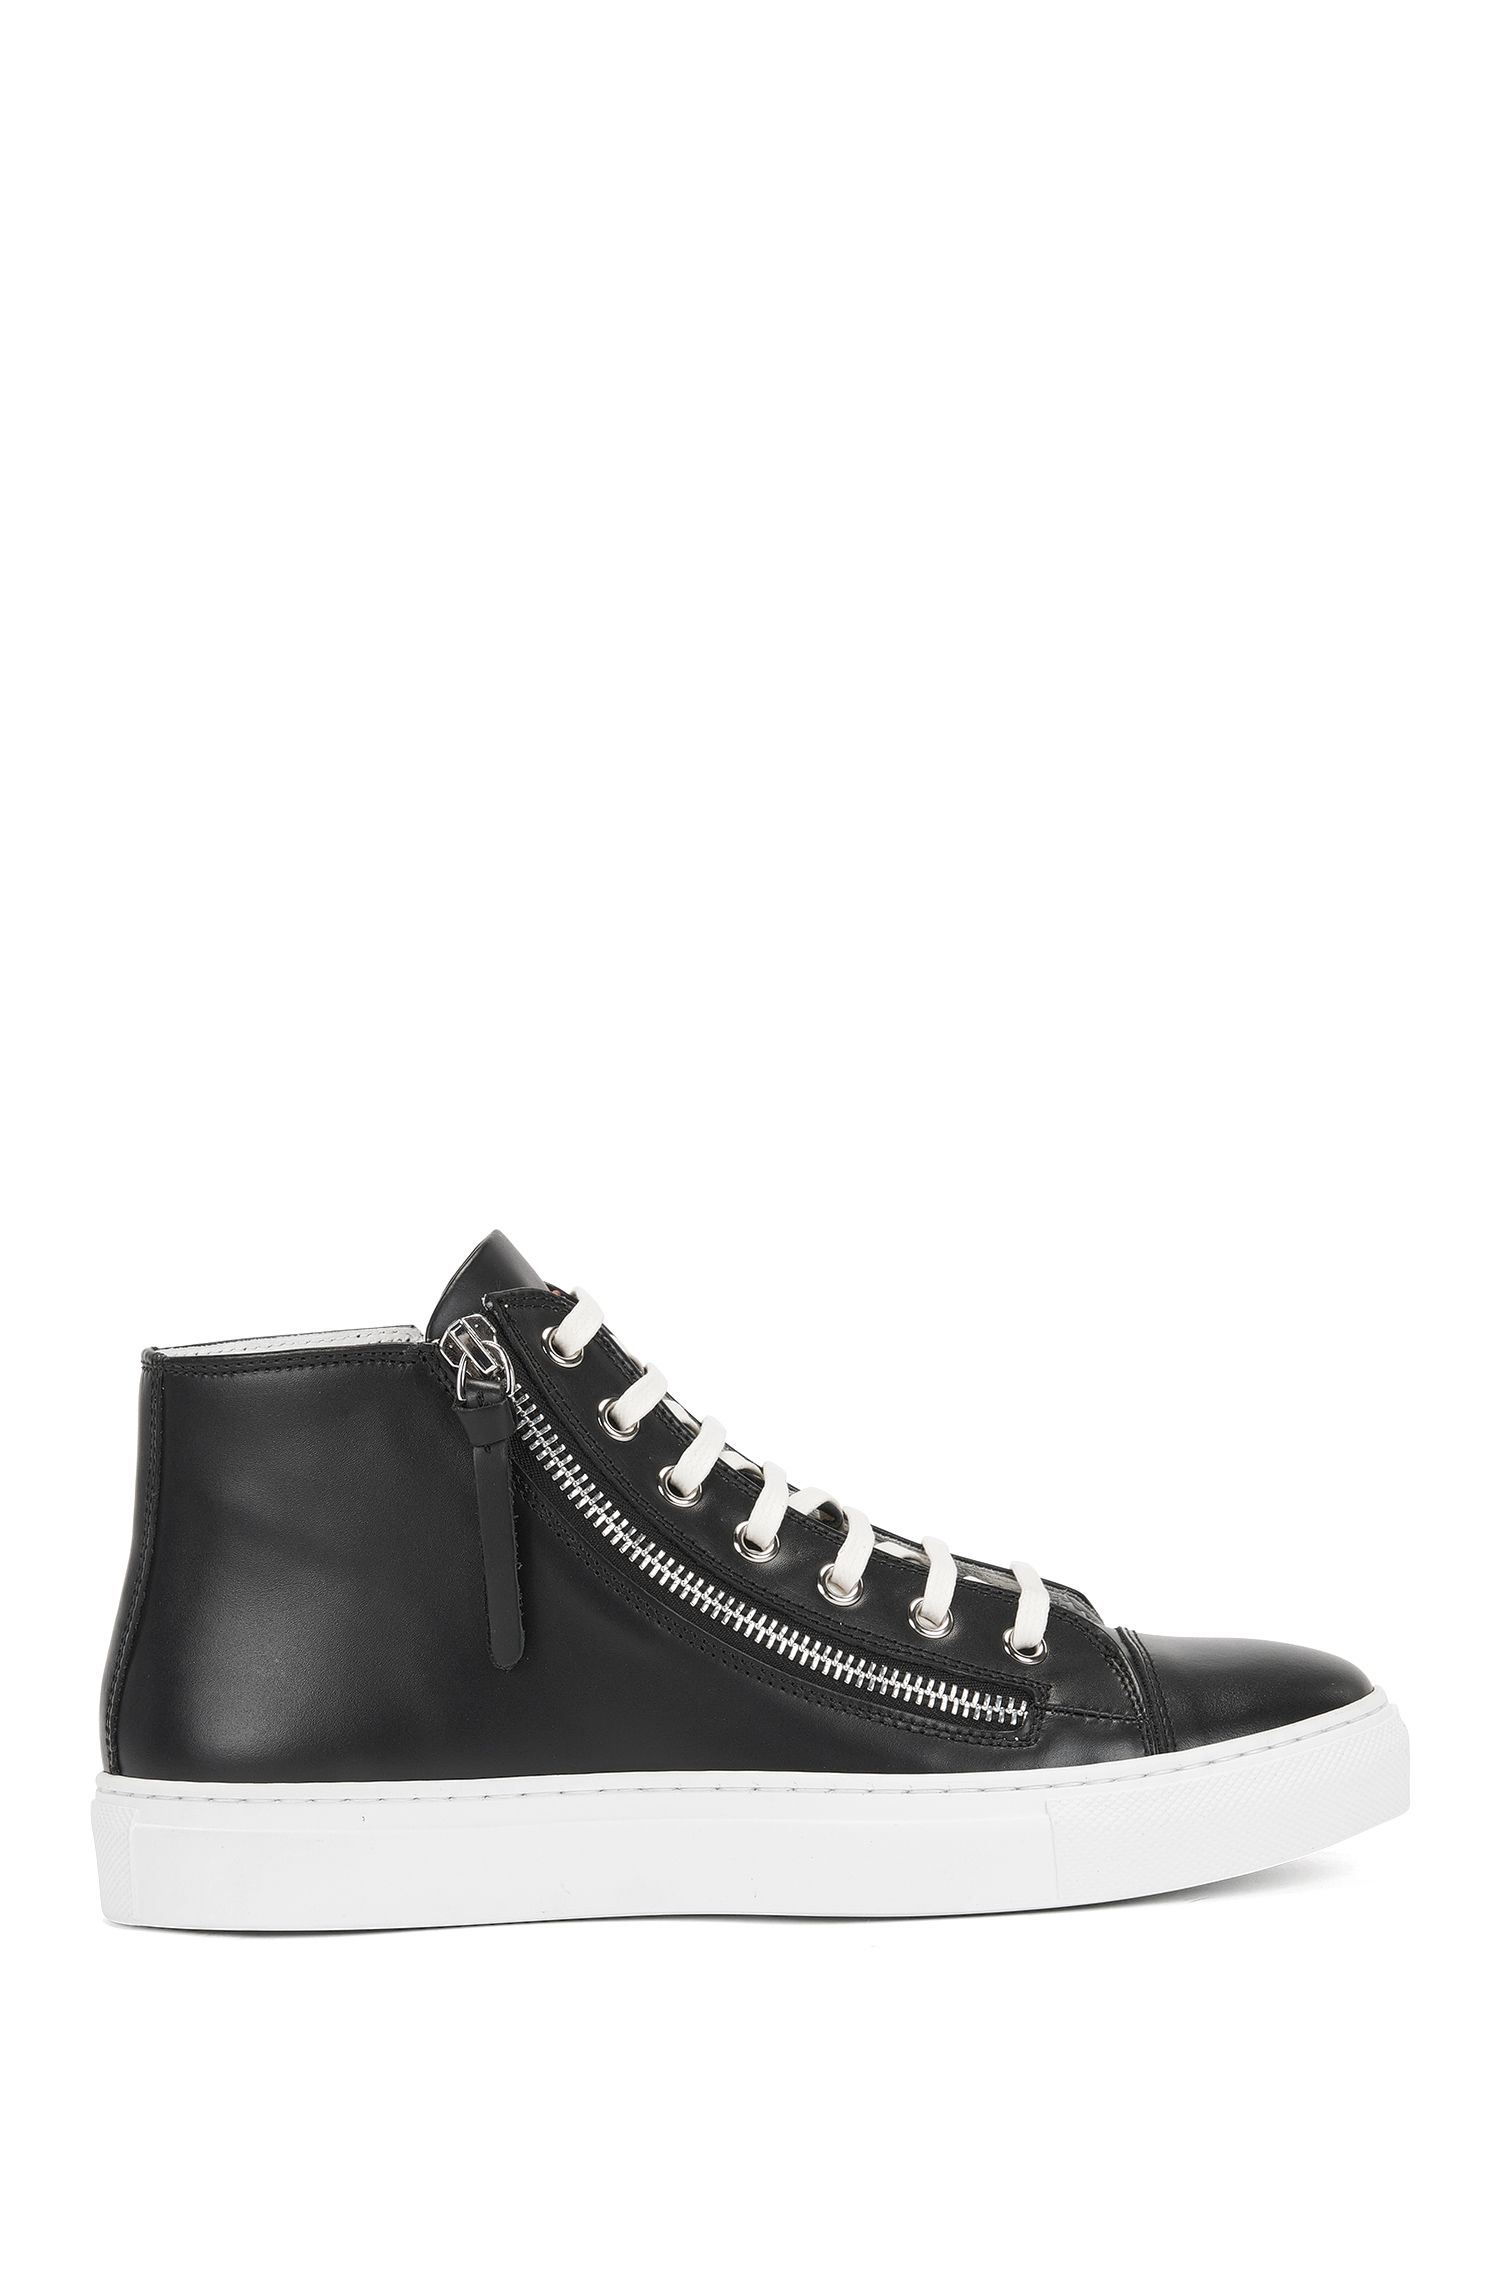 Sneakers high-top con zip in pelle realizzata in Italia